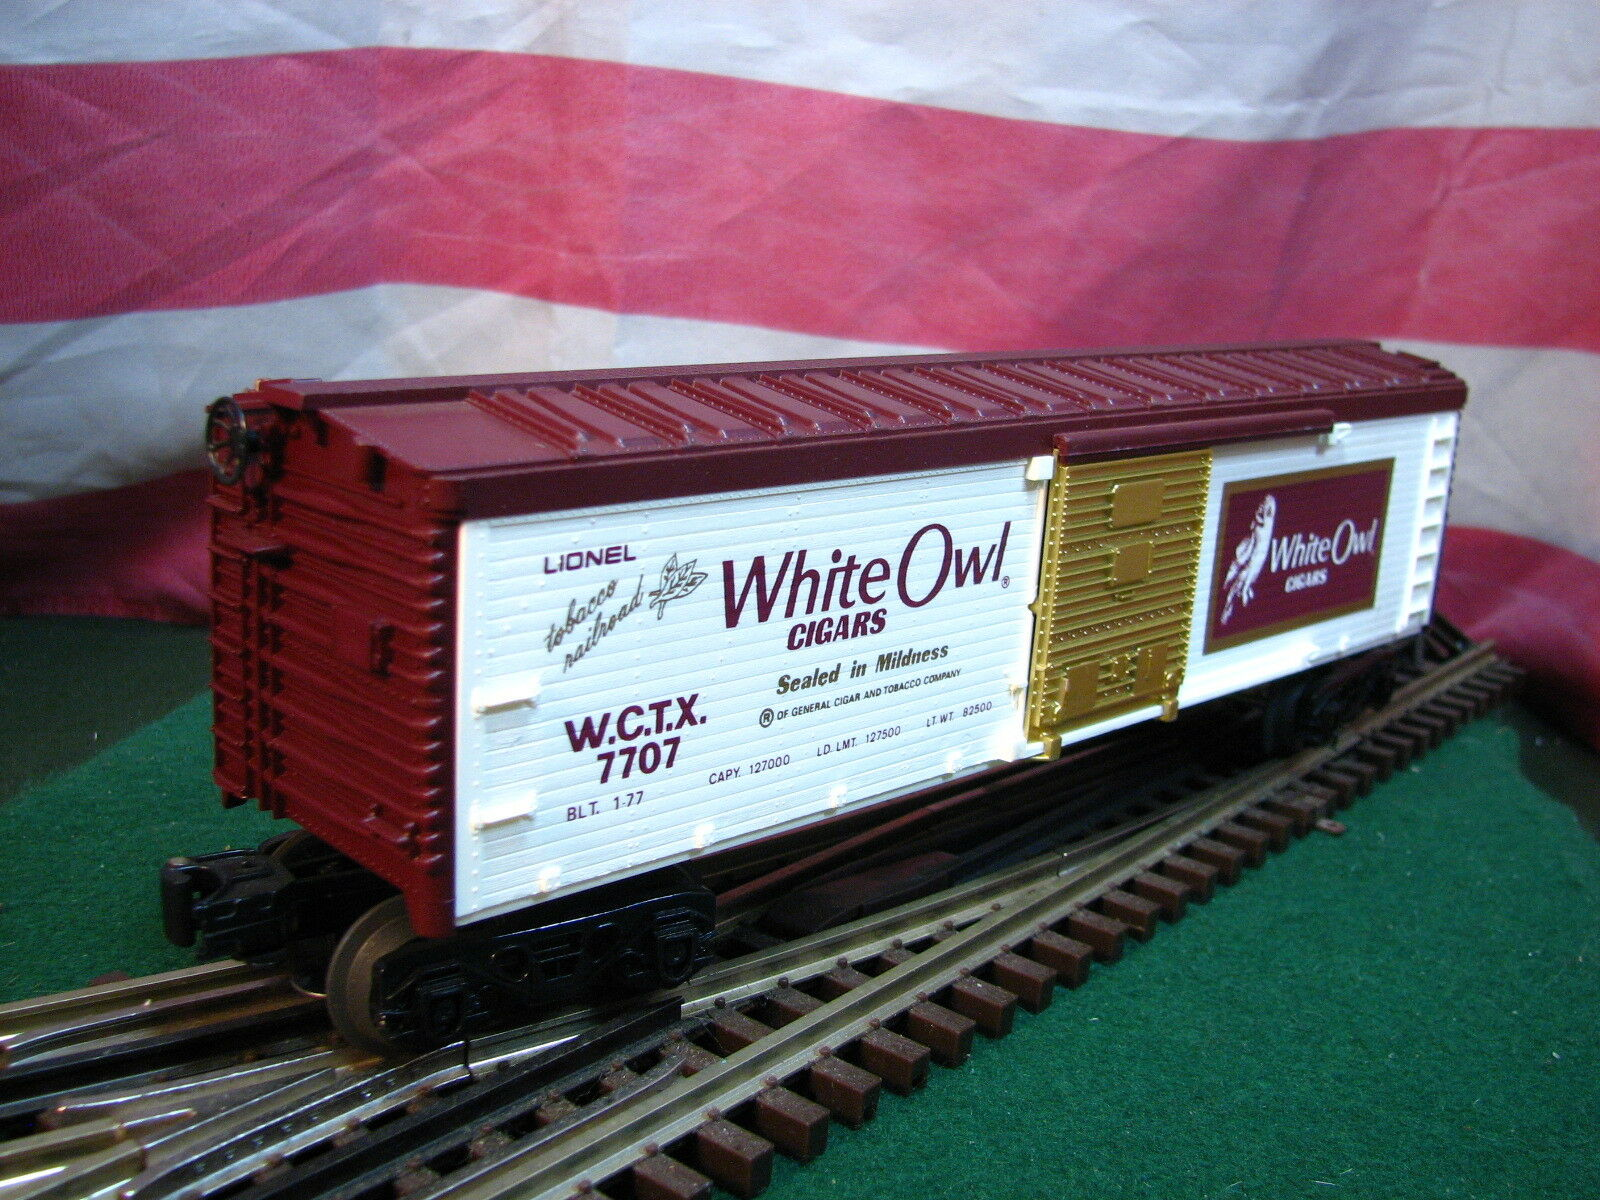 Lionel 6-7707 White Owl Cigars Tobacco Boxcar MINT in Box